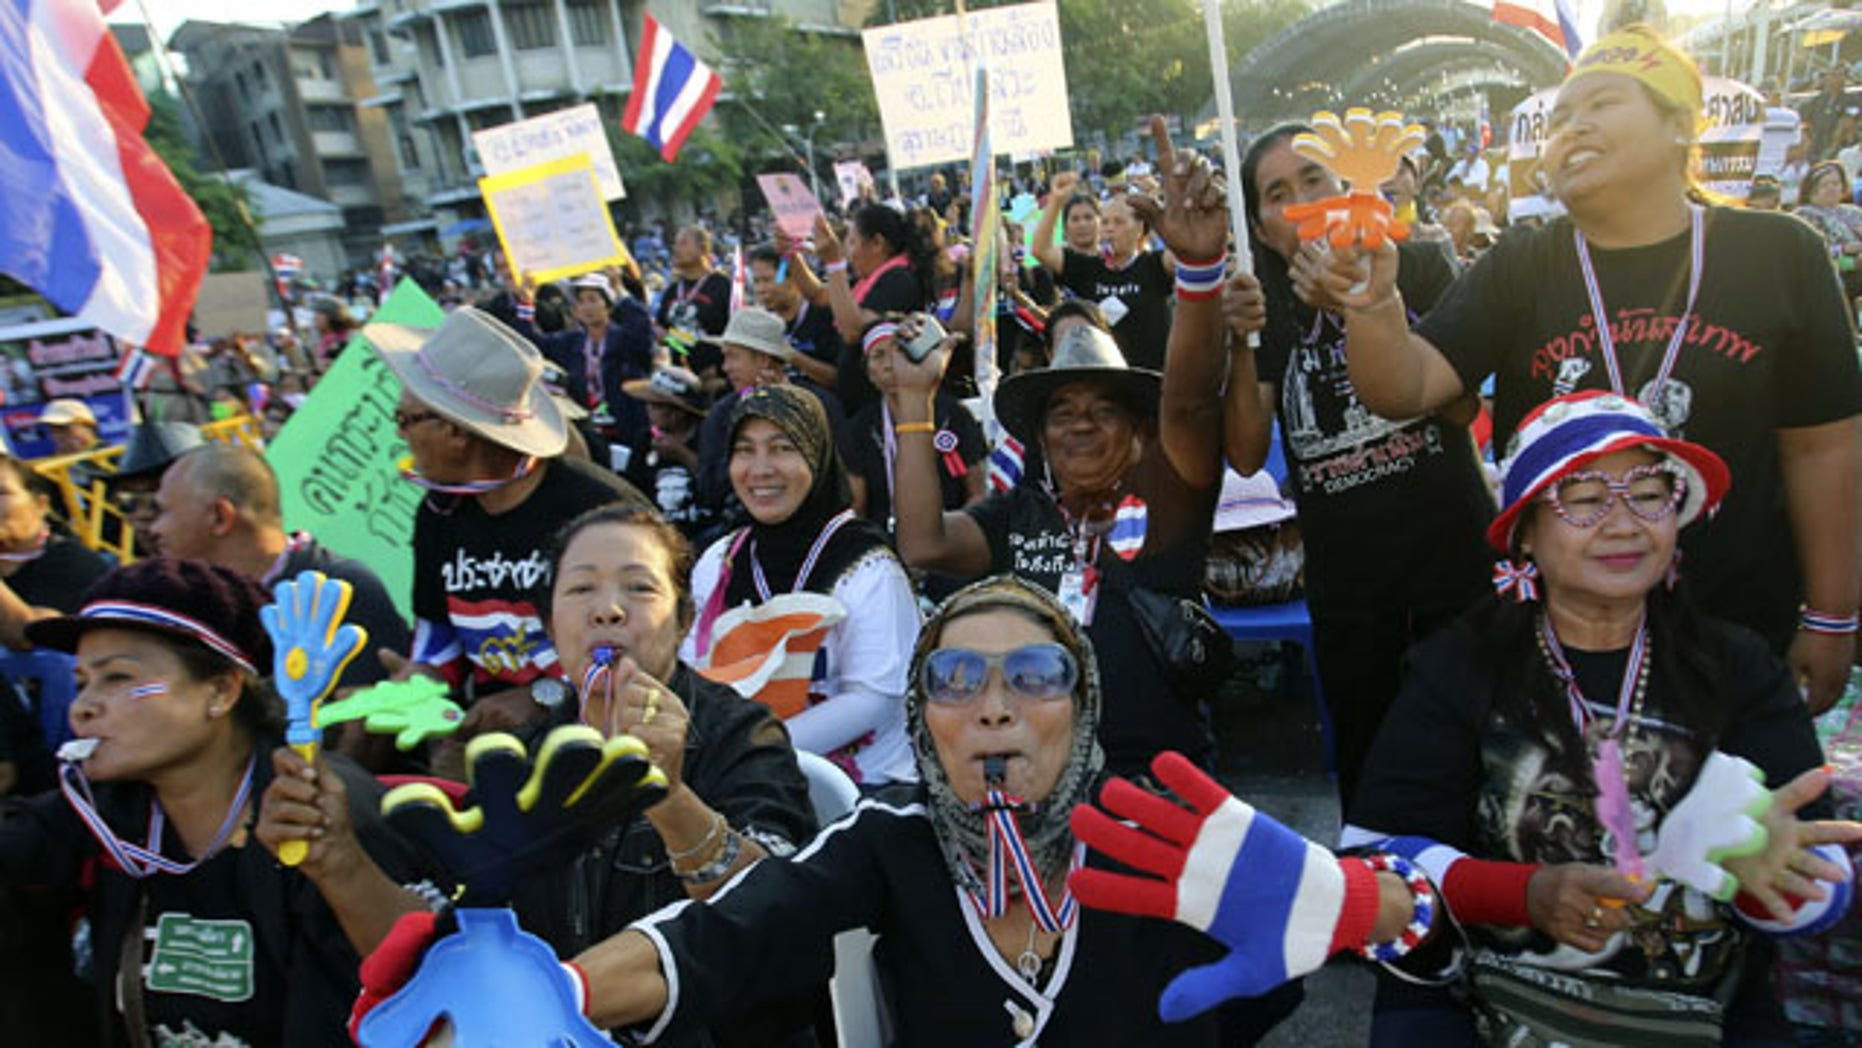 December 1, 2013: Anti-government protesters wave Thai national flags and clapping tools during rally at the Democracy Monument in Bangkok, Thailand. Aggressive political protests in the Thai capital turned violent late Saturday with at least one man killed and several wounded by gunshots in street fighting between supporters and opponents of Prime Minister Yingluck Shinawatra.(AP Photo)